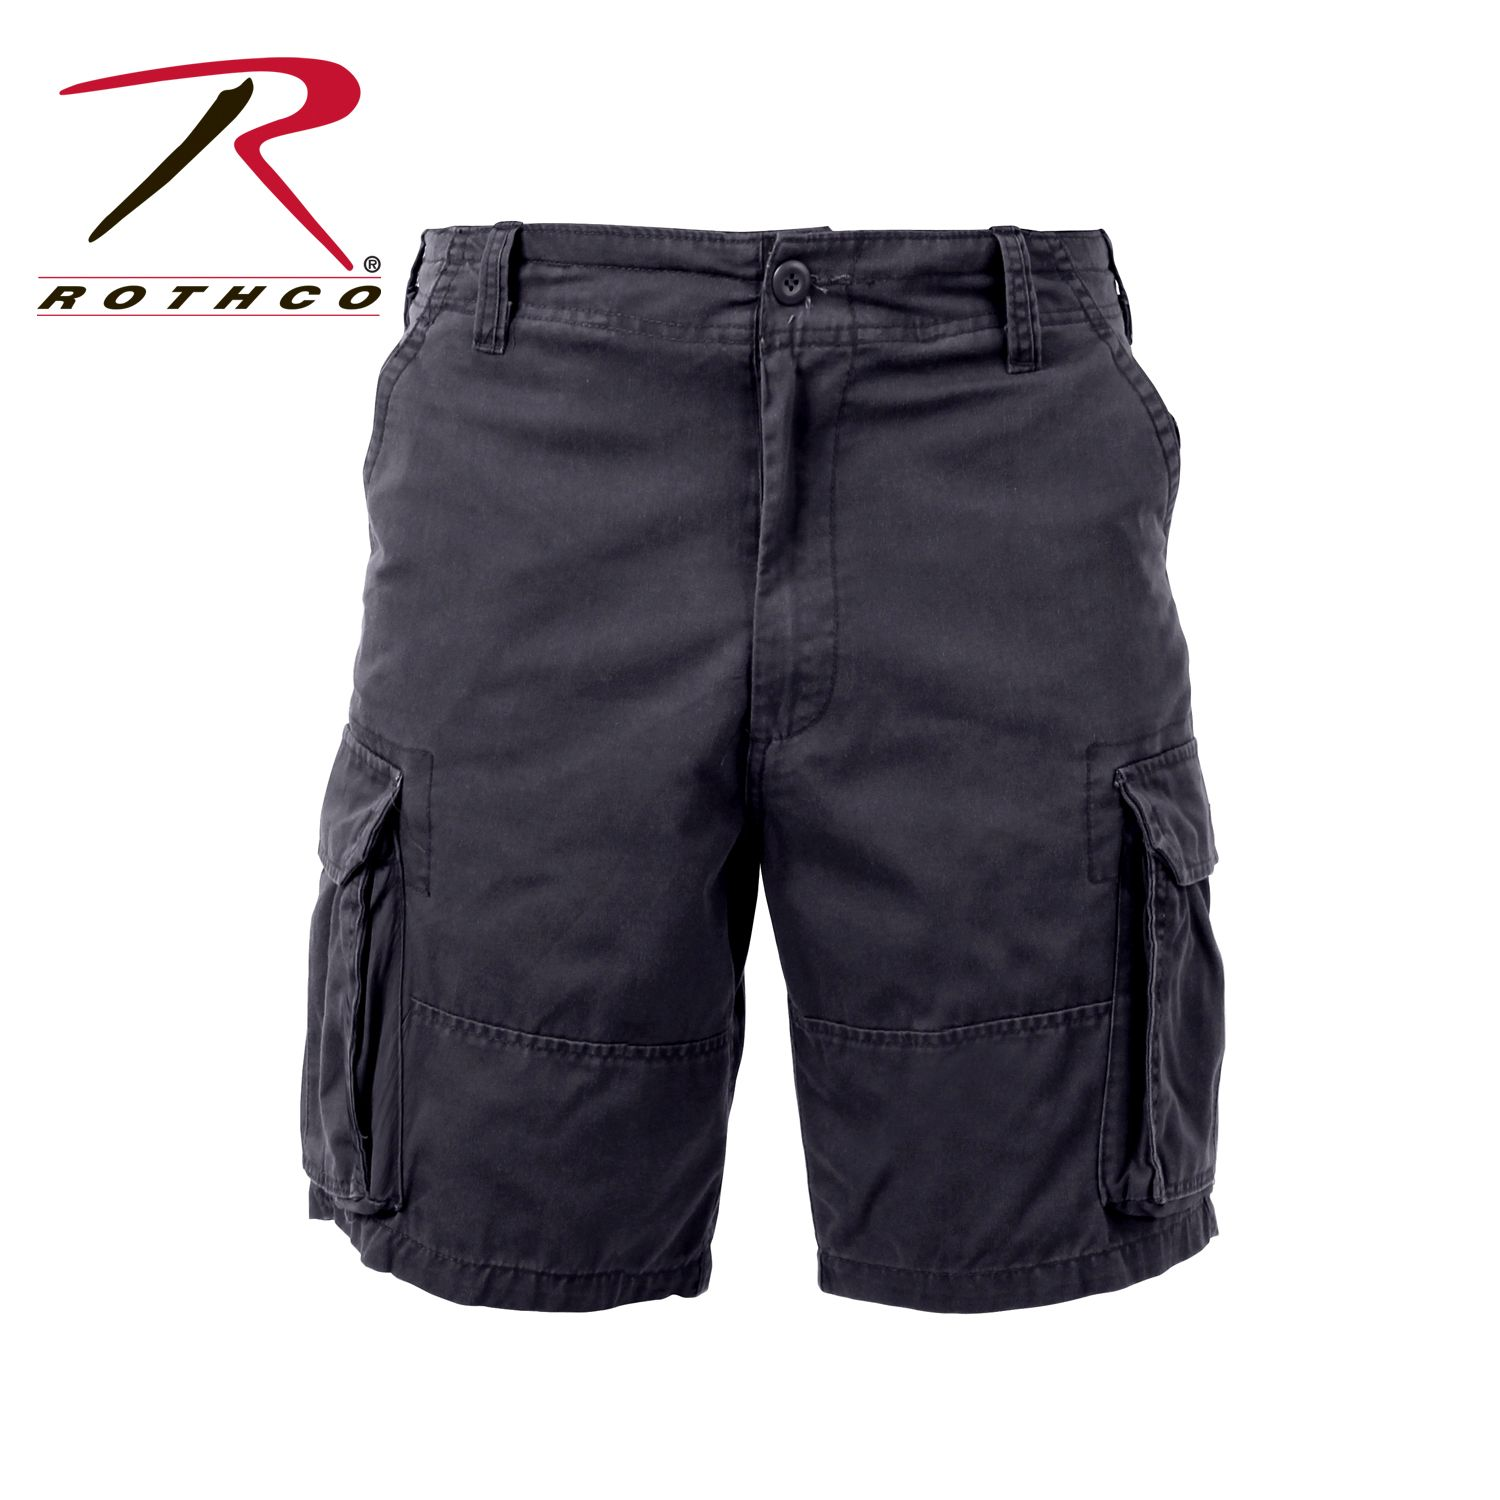 Vintage Fatigue Shorts